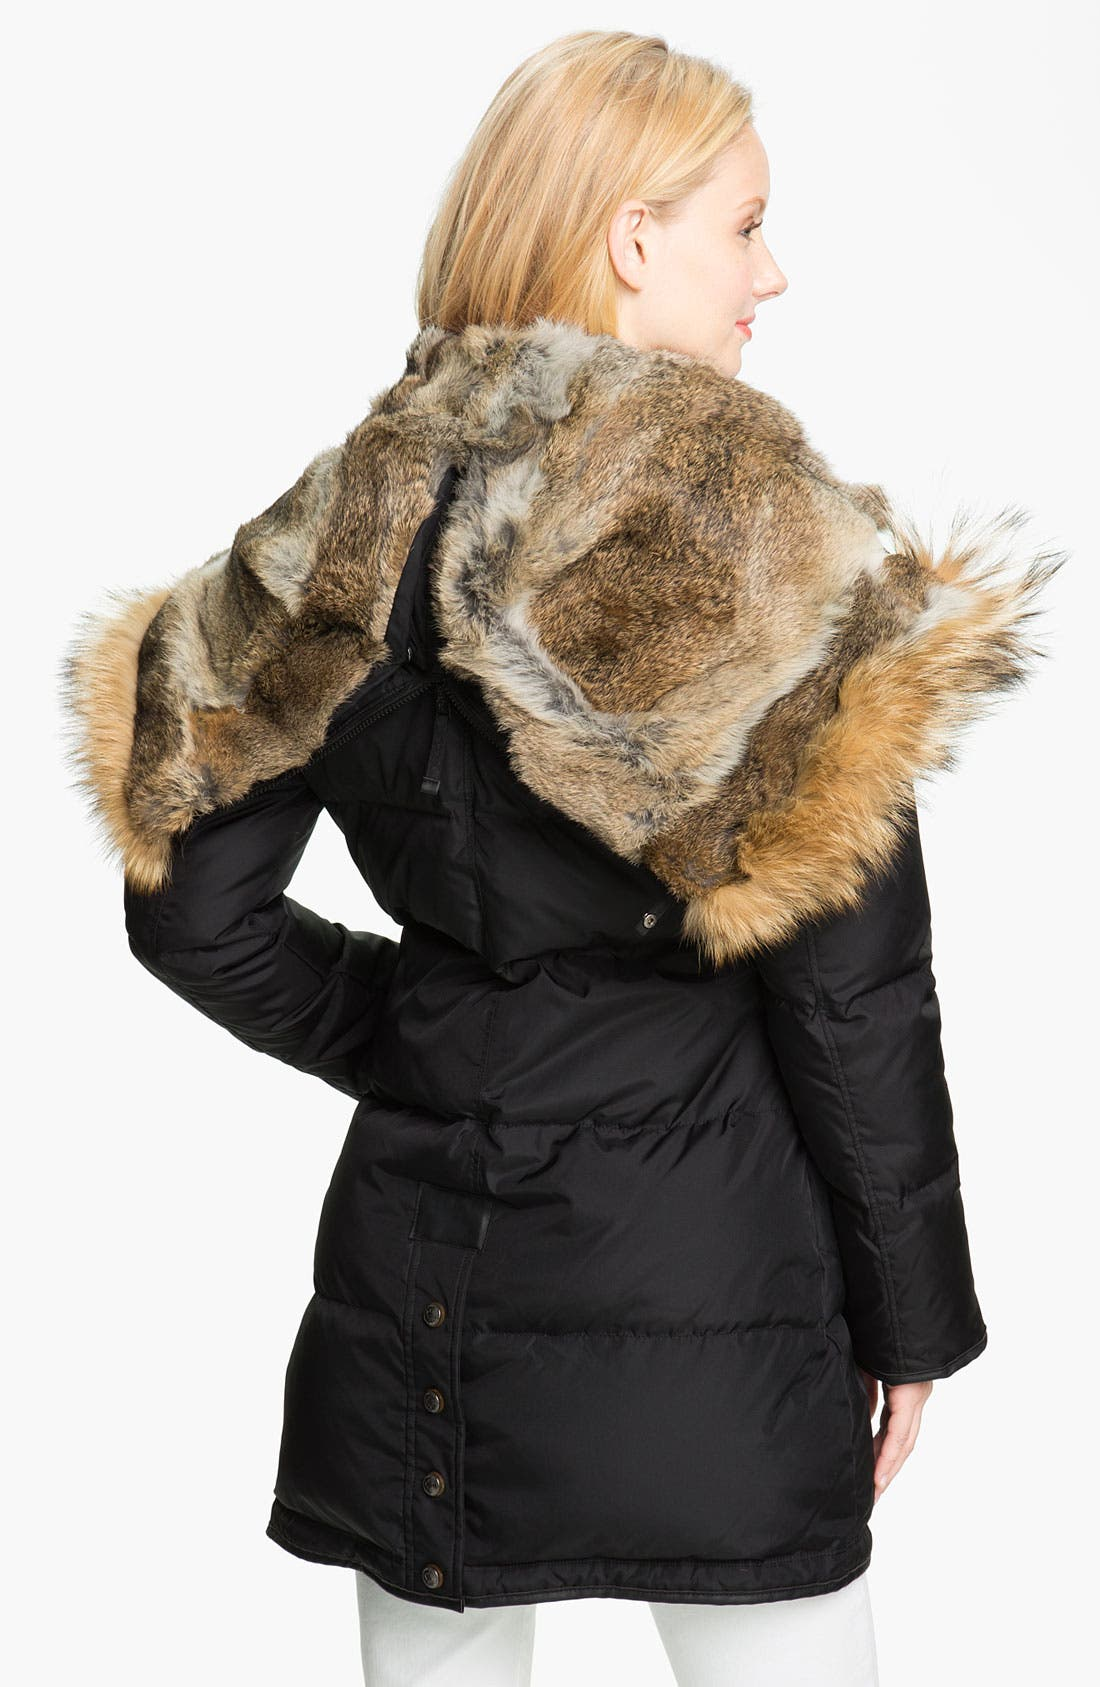 'Cougar' Down Parka with Genuine Coyote & Rabbit Fur,                             Alternate thumbnail 3, color,                             001